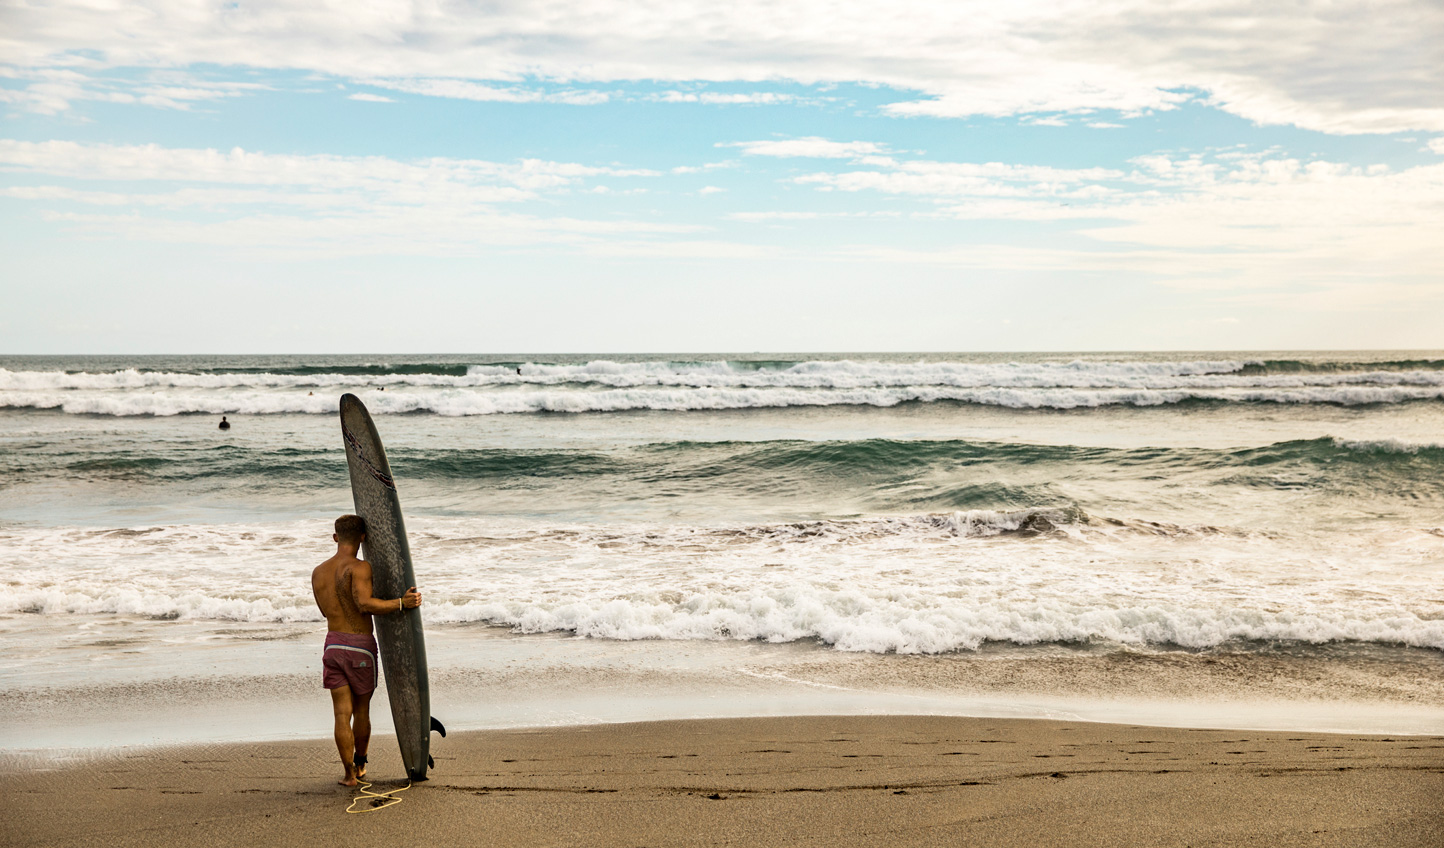 Whether beginner or advanced, Canggu has the perfect wave for every surfer